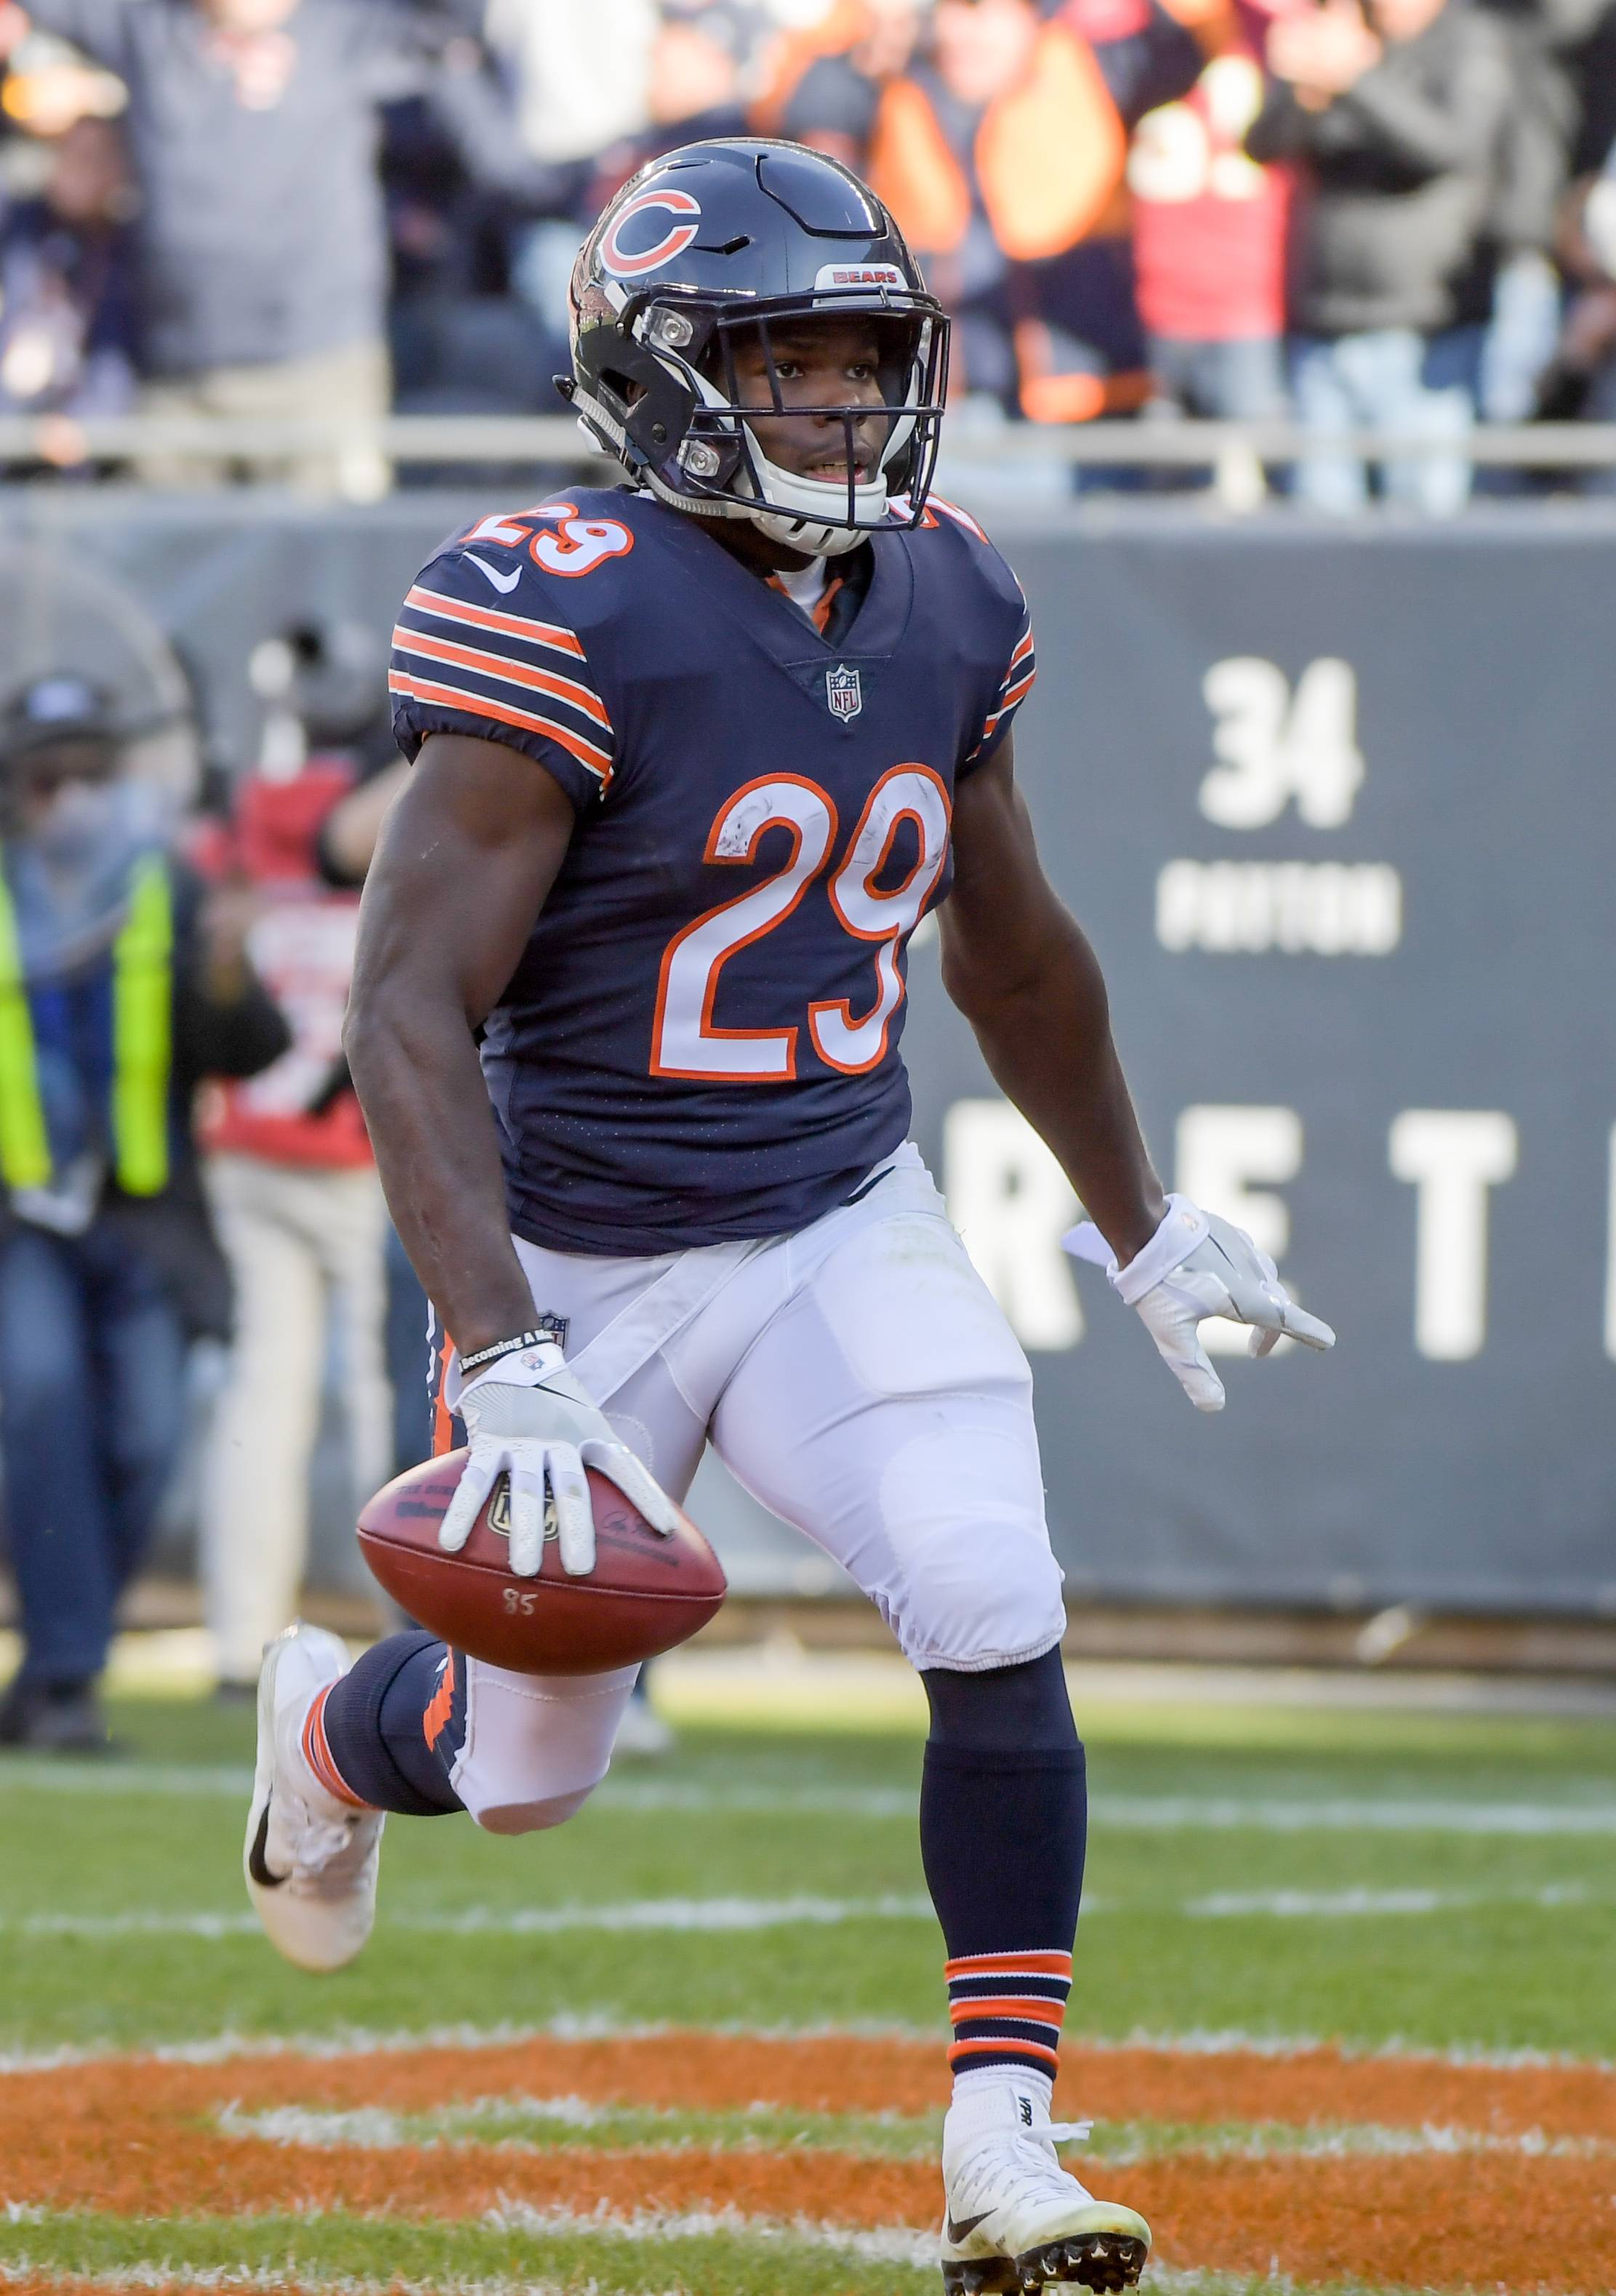 Chicago Bears' running back Tarik Cohen (29) scores on a punt return for the Bears during their 14-15 loss to the San Francisco 49ers at Soldier Field on December 3, 2017.